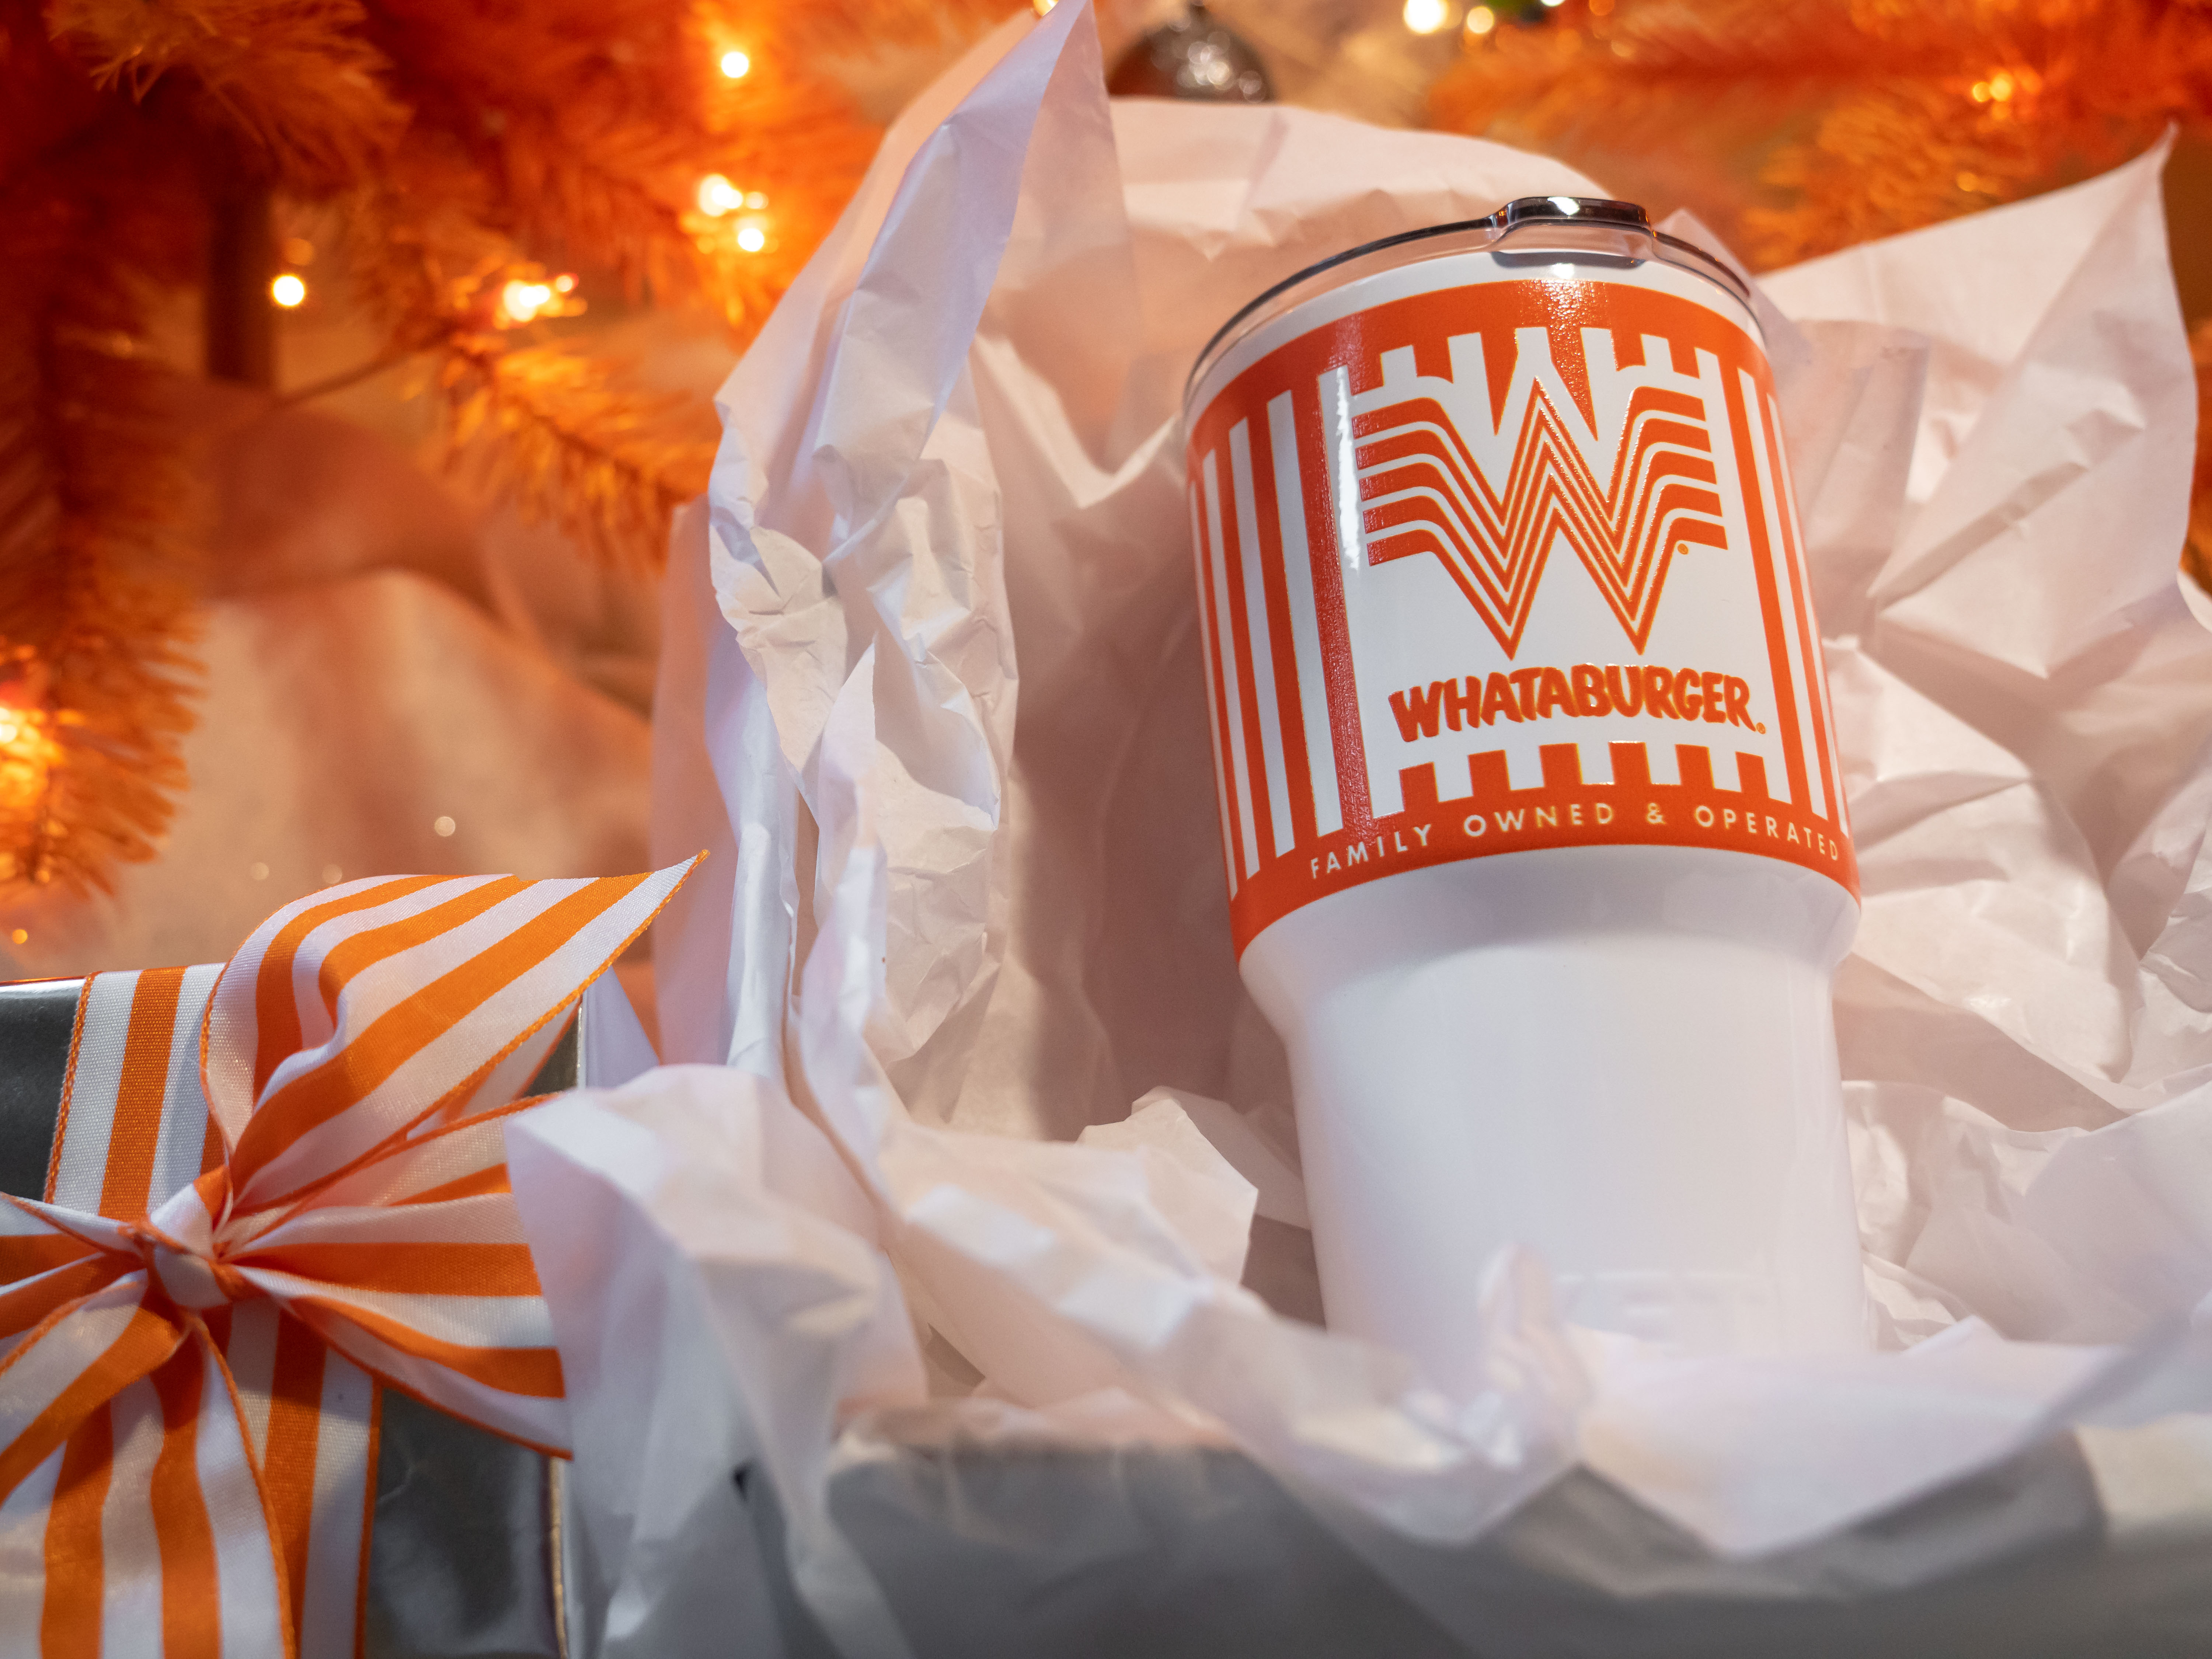 25863460f42 The 2018 Whataburger Gift Guide for the Ultimate Whataburger Fan